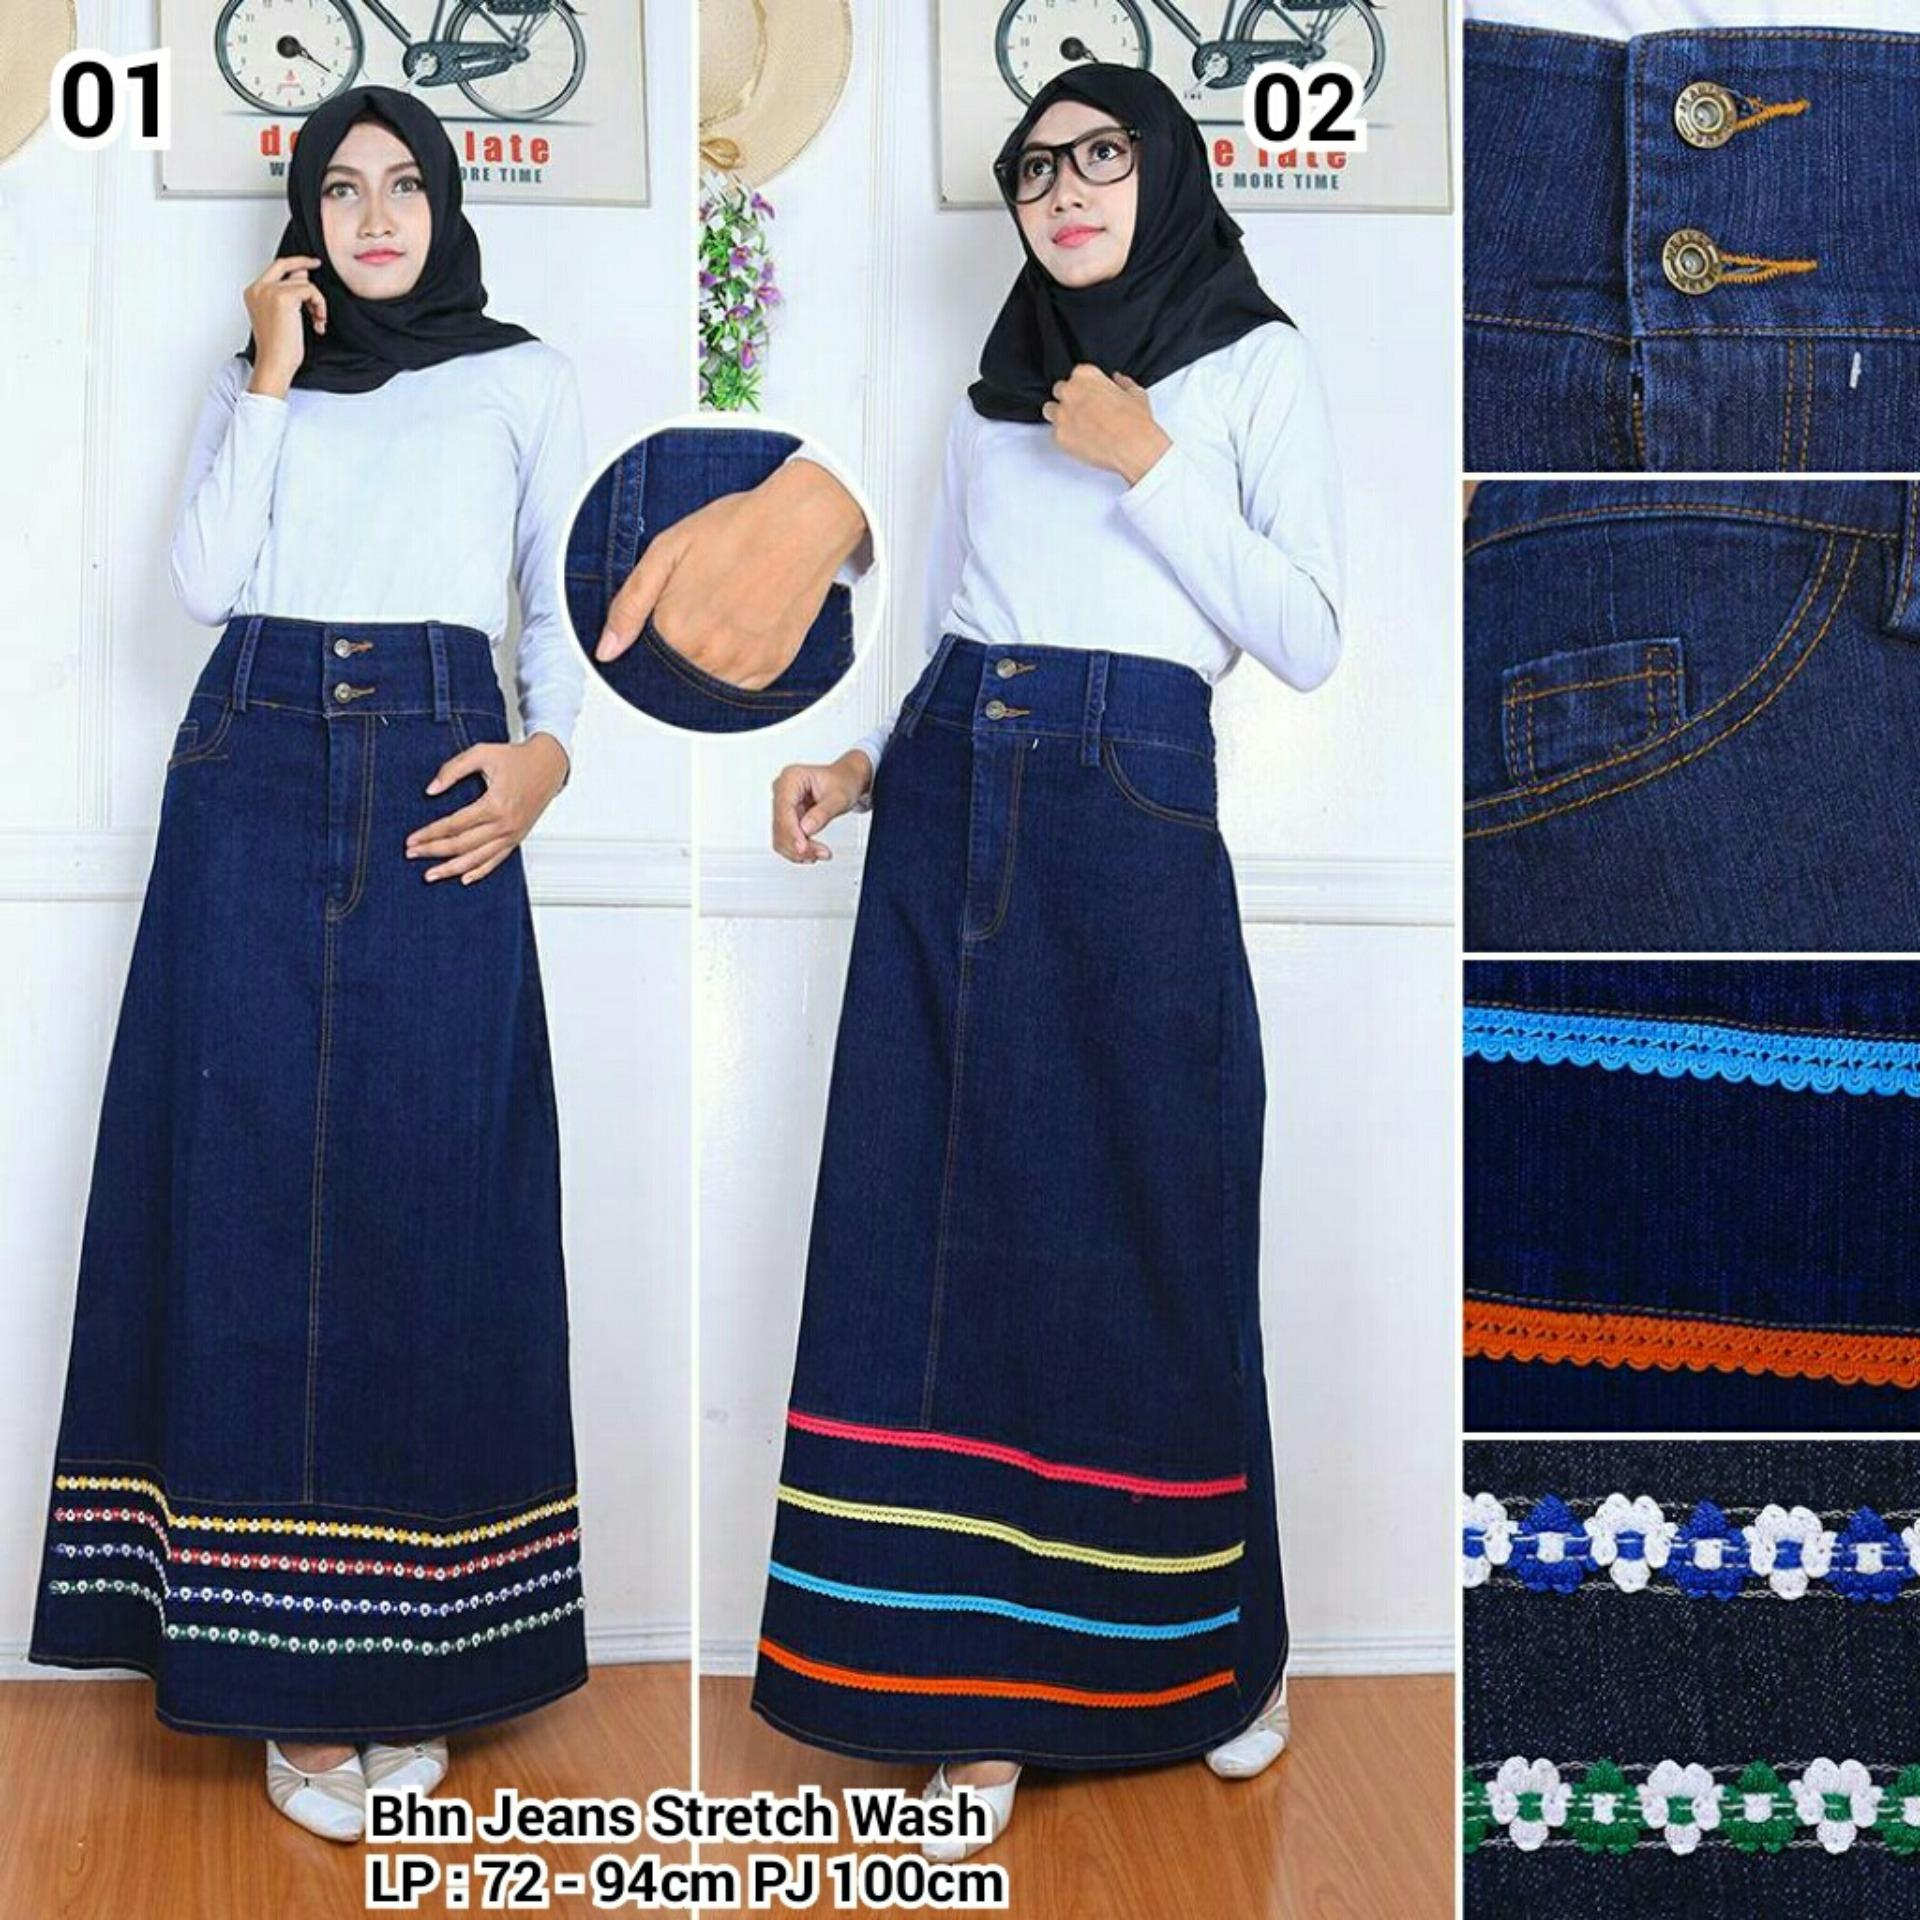 Spesifikasi Sb Collection Rok Maxi Jeans Sinta Long Skirt 02 Biru Tua Yg Baik